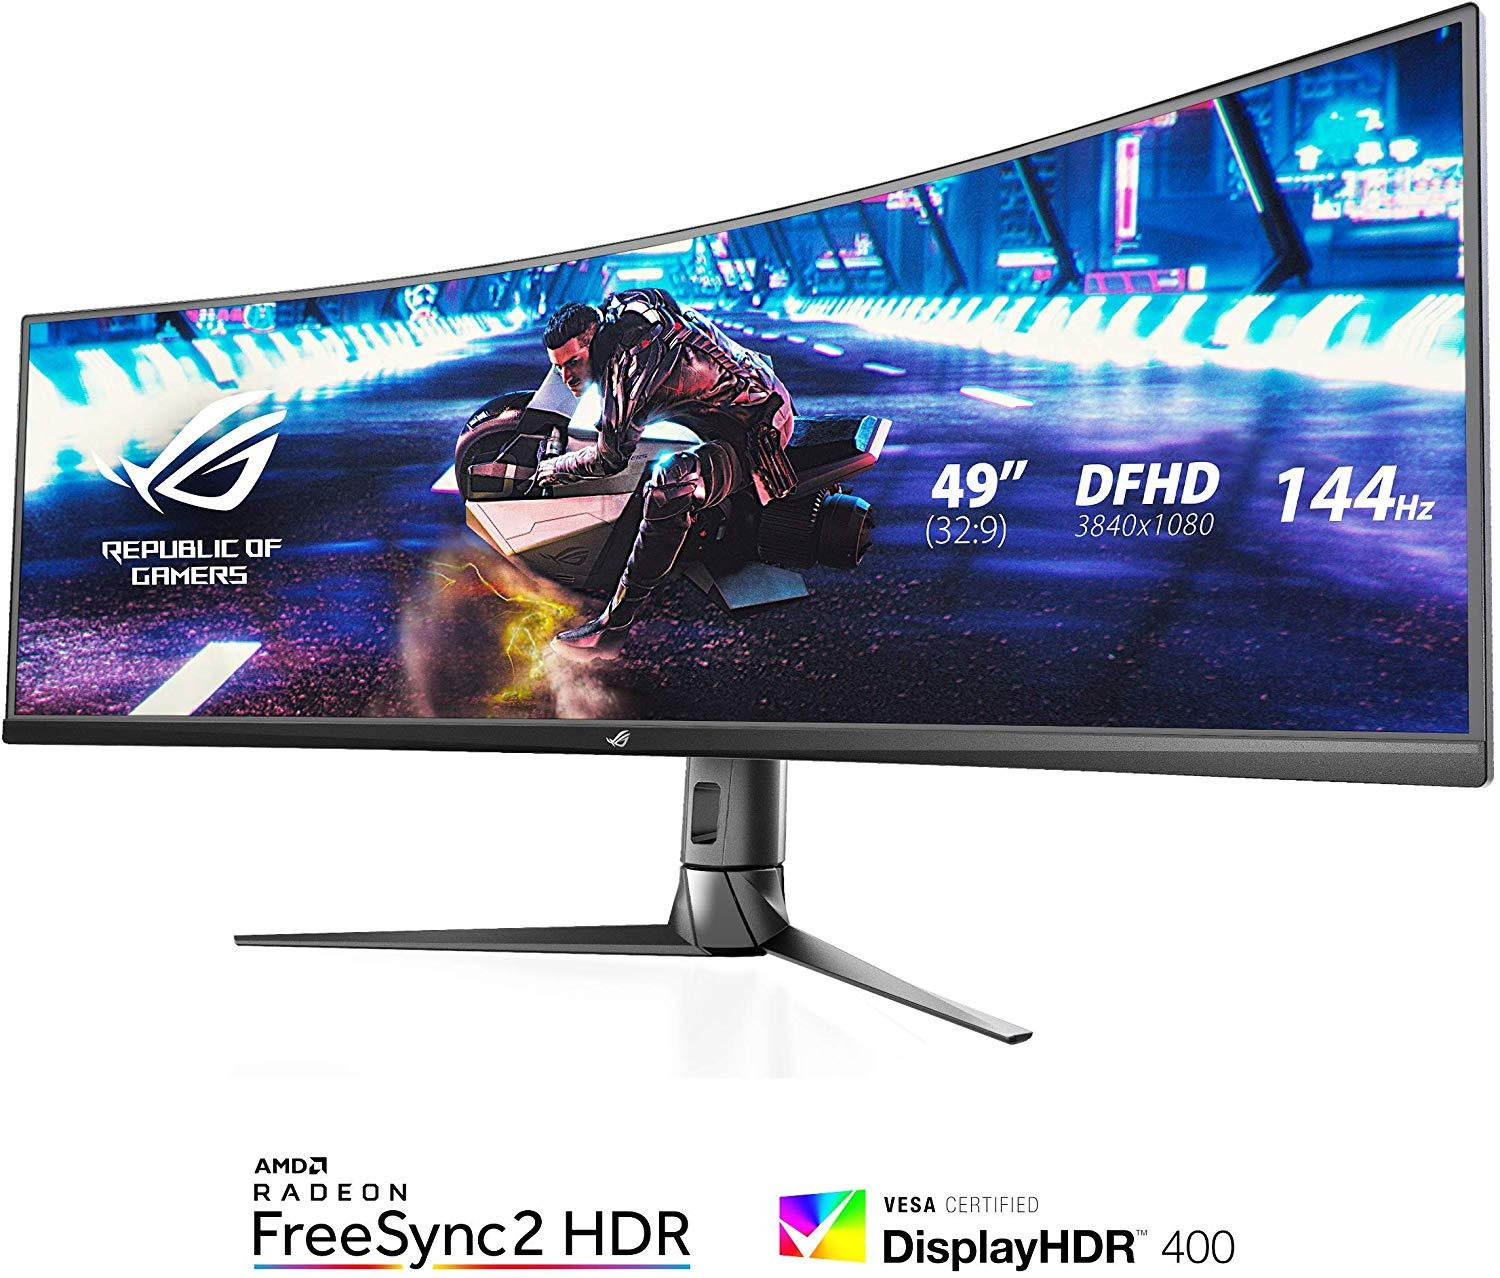 Asus Rog Switch XG49VQ 49 inches Curved Monitor 144hz (3840x1080)